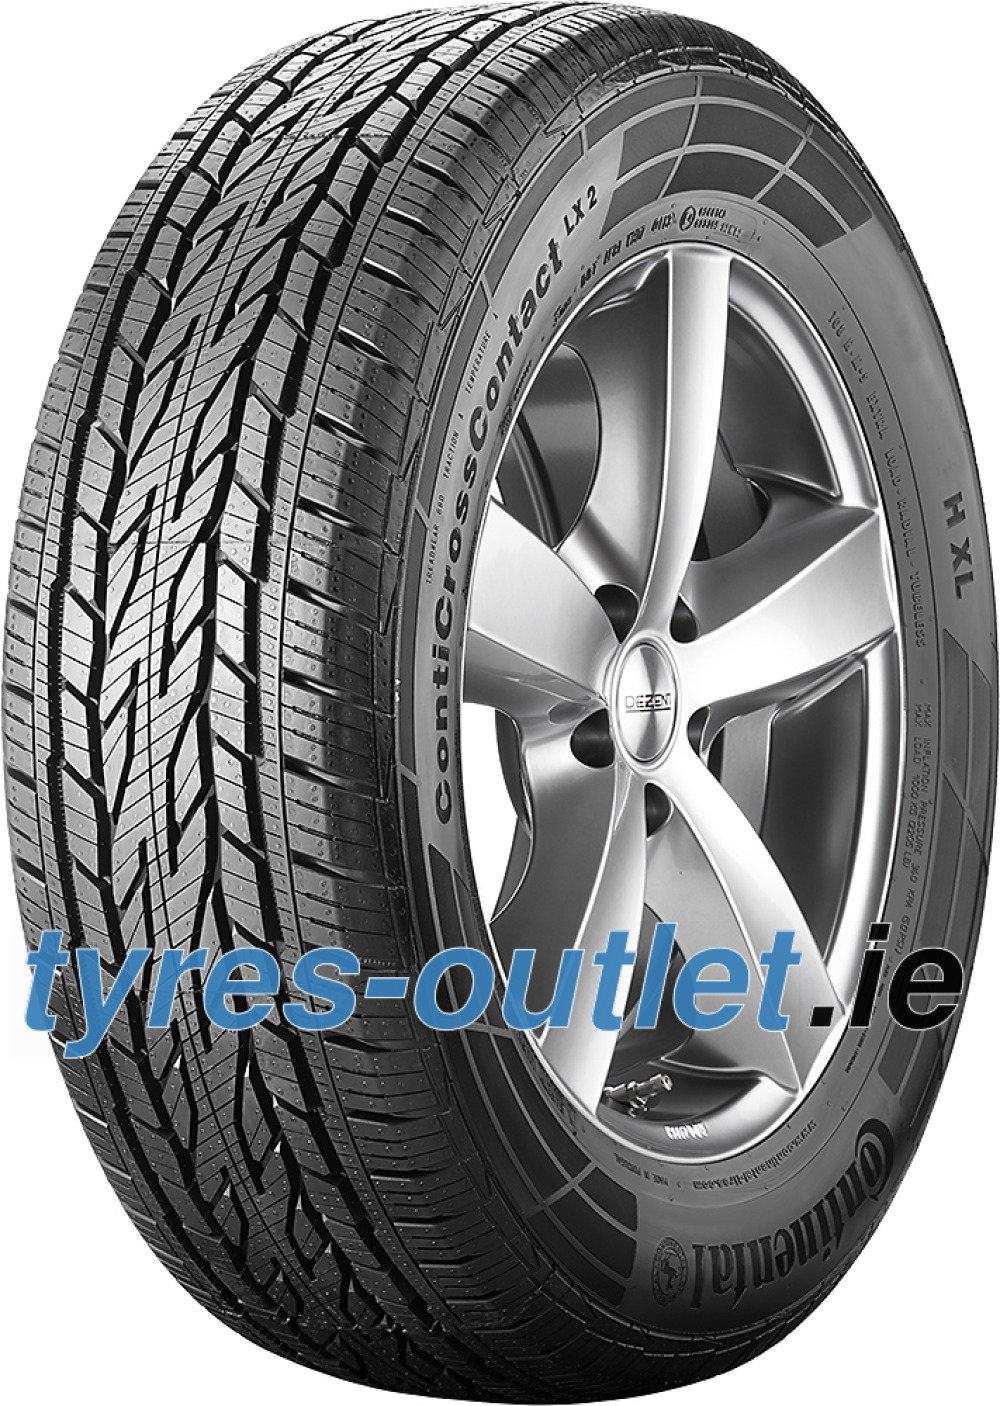 Continental ContiCrossContact LX 2 ( 215/60 R17 96H with kerbing rib )